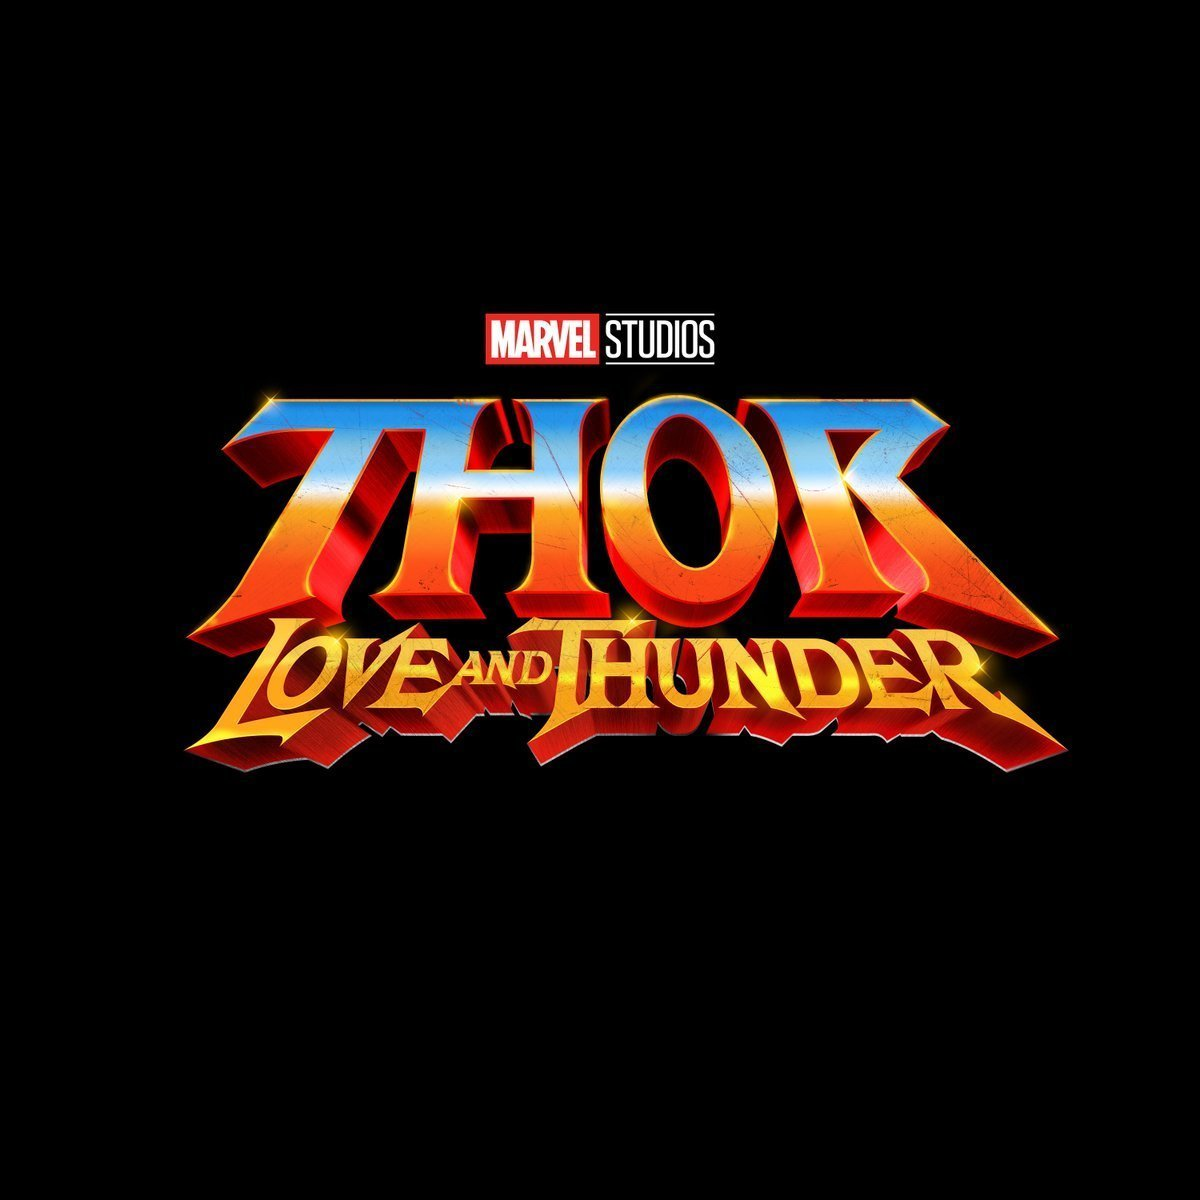 Le logo du Marvel Studios, Thor: Love and Thunder